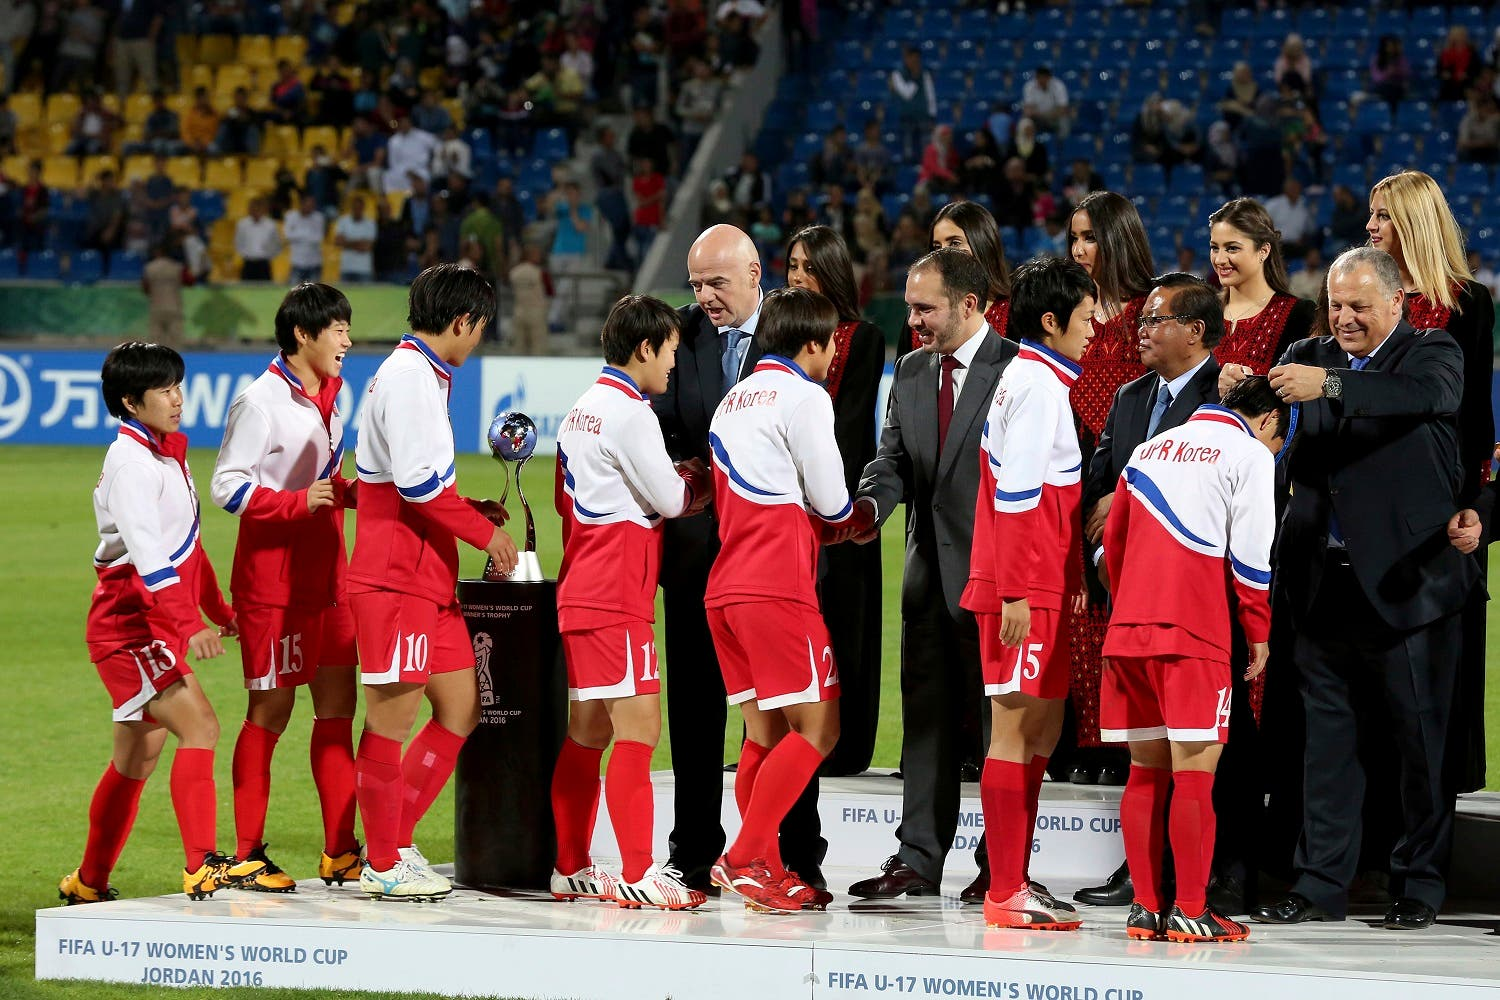 FIFA President Gianni Infantino, center, award North Korean players the gold medals, after North Korea won the final game against Japan at the FIFA U-17 Women's World Cup at Amman International Stadium in Amman, Jordan, Friday, Oct. 21, 2016. (Photo AP/Raad Adayleh)